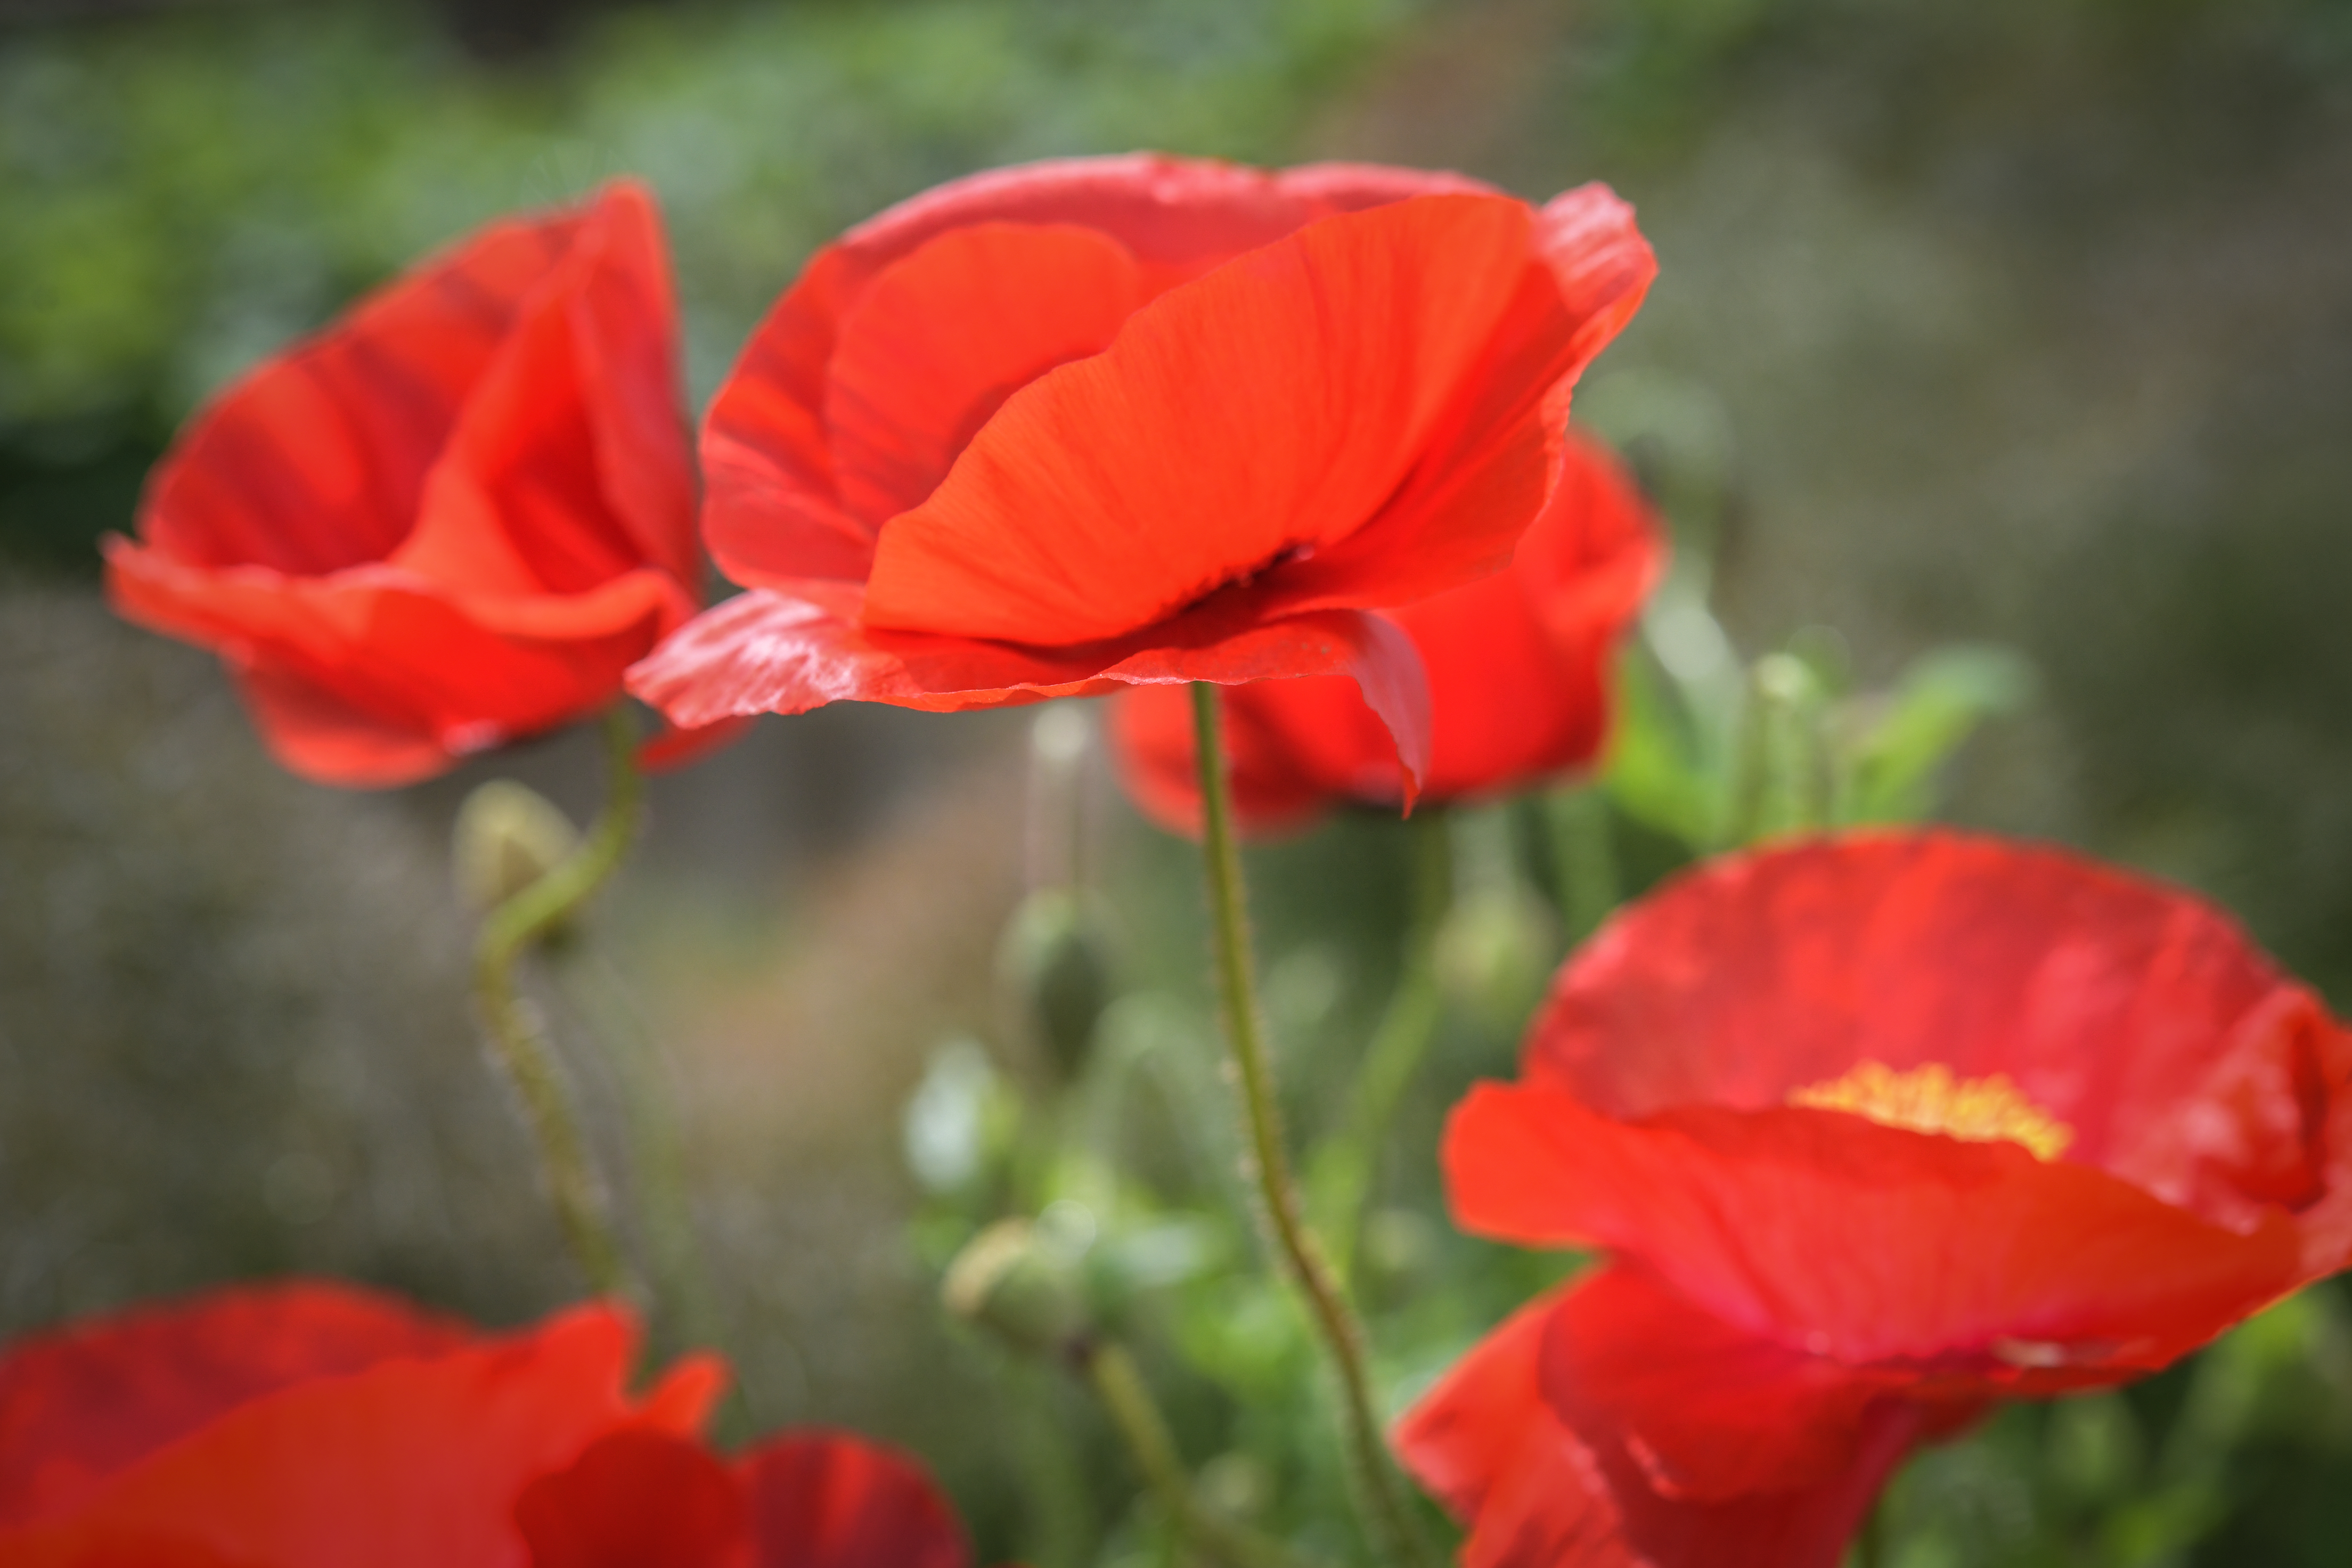 Red poppies close up American Legion poppy flower